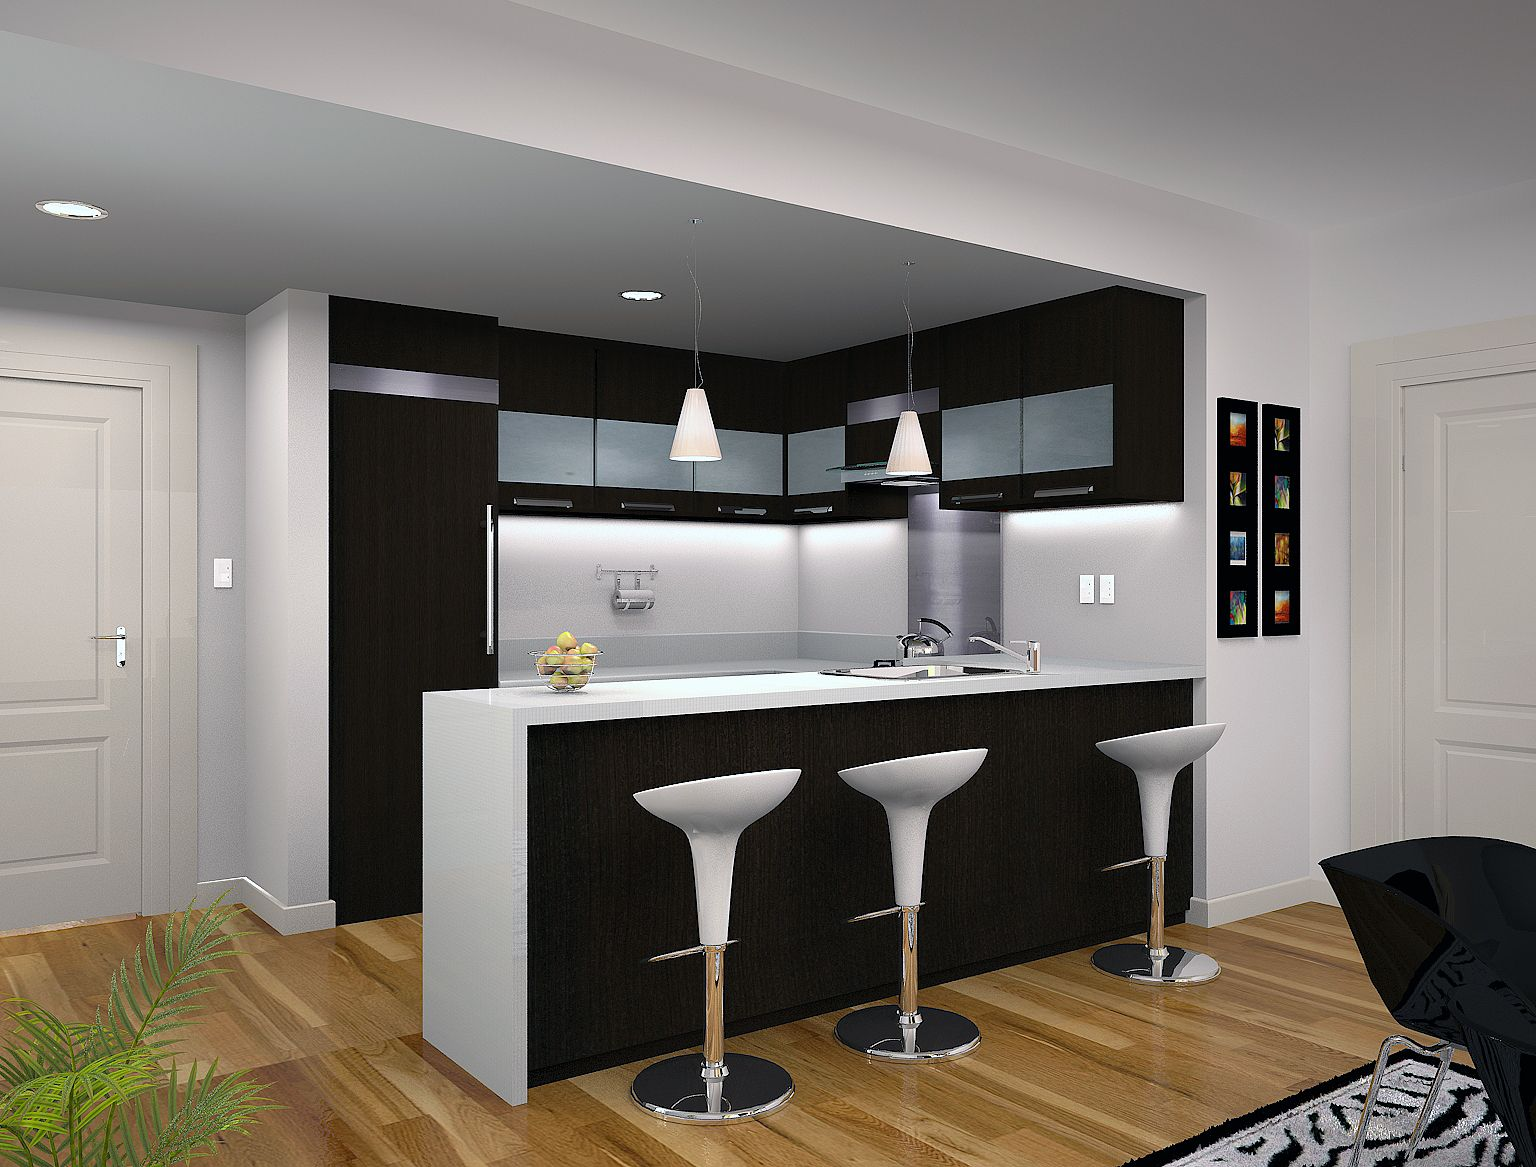 Kitchen Renovation Ideas Malaysia